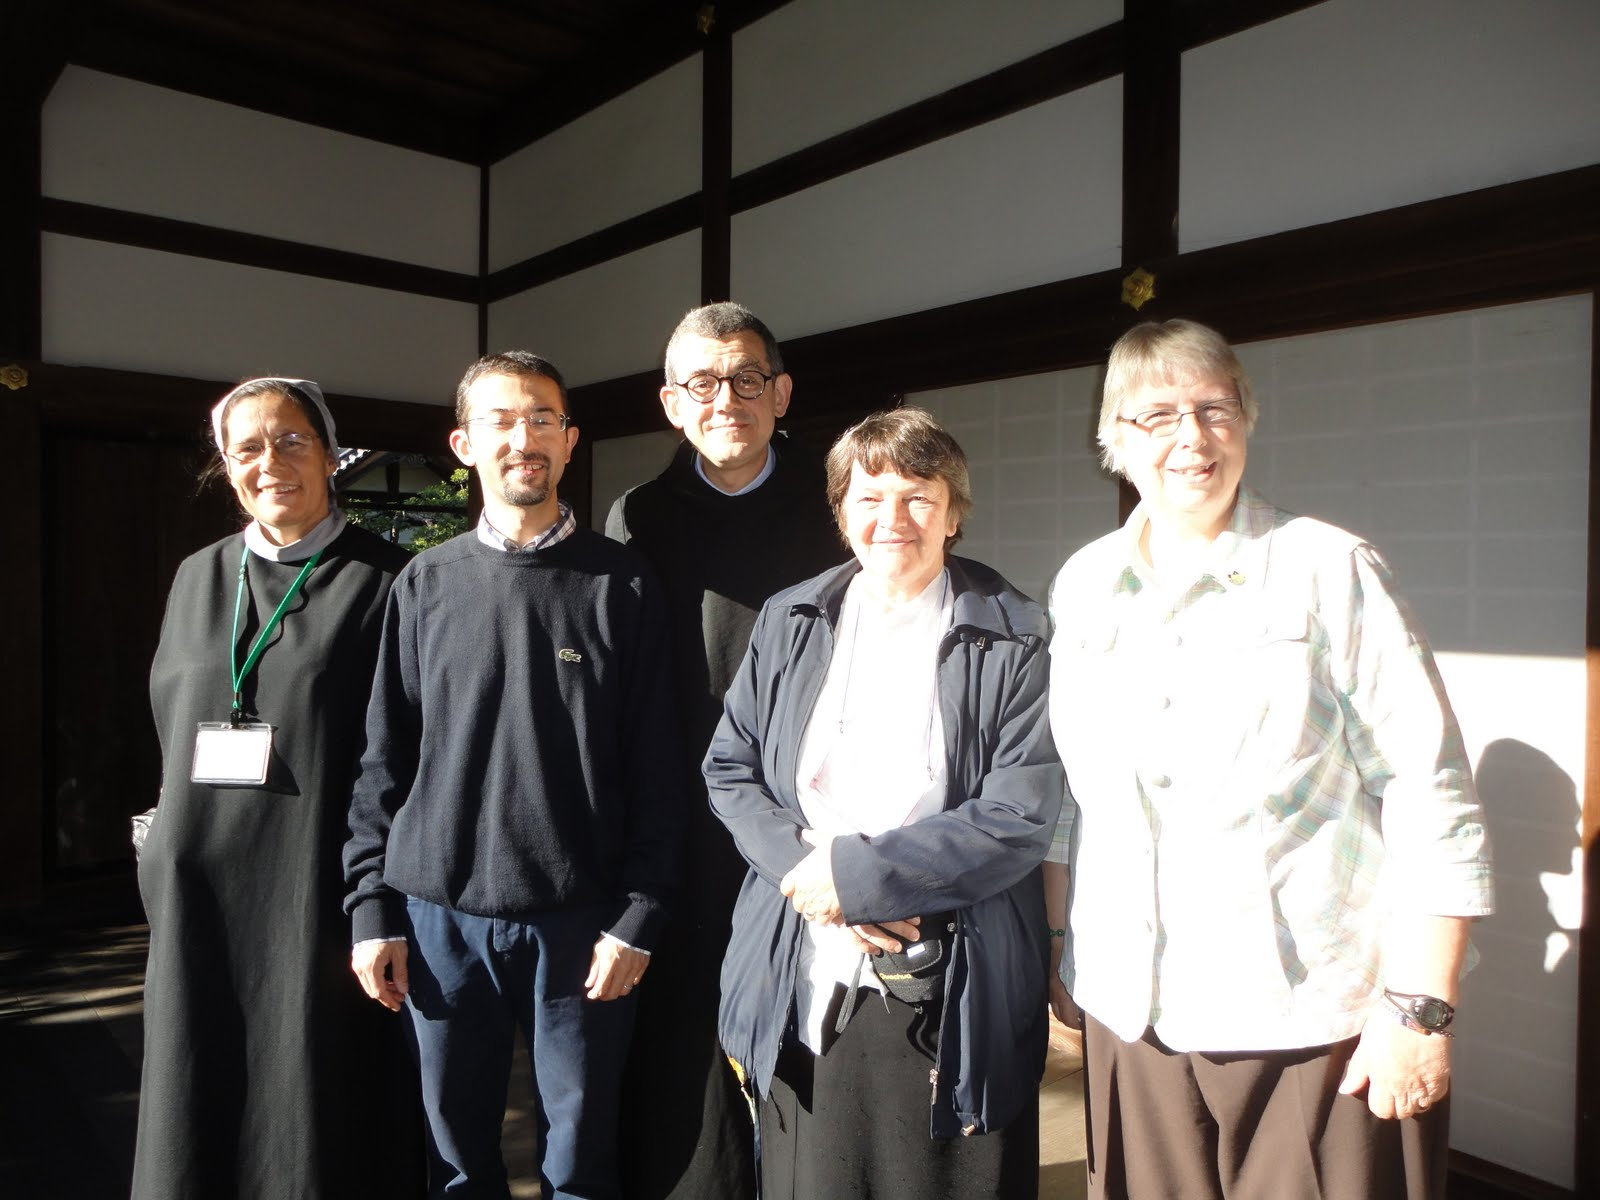 saint benedict buddhist single men What was new, jan-mar 2009 : news and information about the benedictine men and women, brothers, sisters, oblates, and other monastic orders from saint john's abbey, a community of catholic men in collegeville, minnesota 56321 usa.